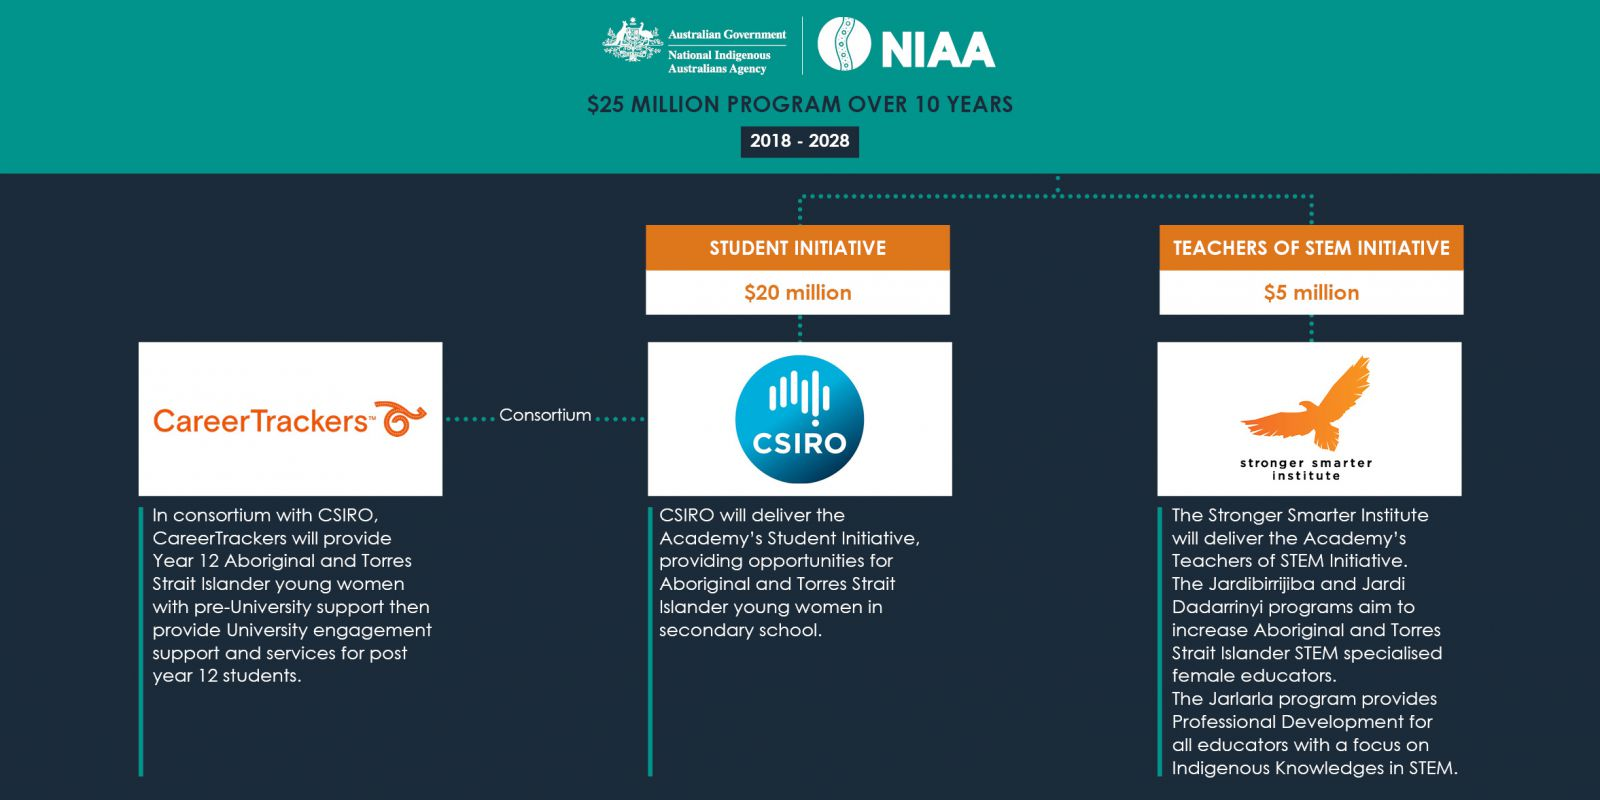 Australian Government National Indigenous Australians Agency Logo - $25 million program over 10-years 2018-2028. Graphic image shows two streams. The Student Initiative and the Teachers of STEM Initiative. Student Initiative - $20 million, Logo: CSIRO, The CSIRO in consortium with CareerTrackers will deliver the Academy's Student Initiative, providing opportunities for Aboriginal and Torres Strait Islander young women in secondary school, Graphic line that shows partnership with CareerTrackers, Logo: CareerTrackers, In consortium with CSIRO, CareerTrackers will provide Year 12 Aboriginal and Torres Strait Islander young women with pre-University support then provide University engagement support and services for post year 12 students. Teachers of Stem Initiative - $5 million, Logo: Stronger Smarter Institute, The Stronger Smarter Institute will deliver the Academy's Teachers of STEM Initiative. The Jardibirrijiba and Jardi Dadarrinyi programs aim to increase Aboriginal and Torres Strait Islander STEM specialised female educators. The Jarlarla program provides Professional Development for all educators with a focus on Indigenous Knowledges in STEM.